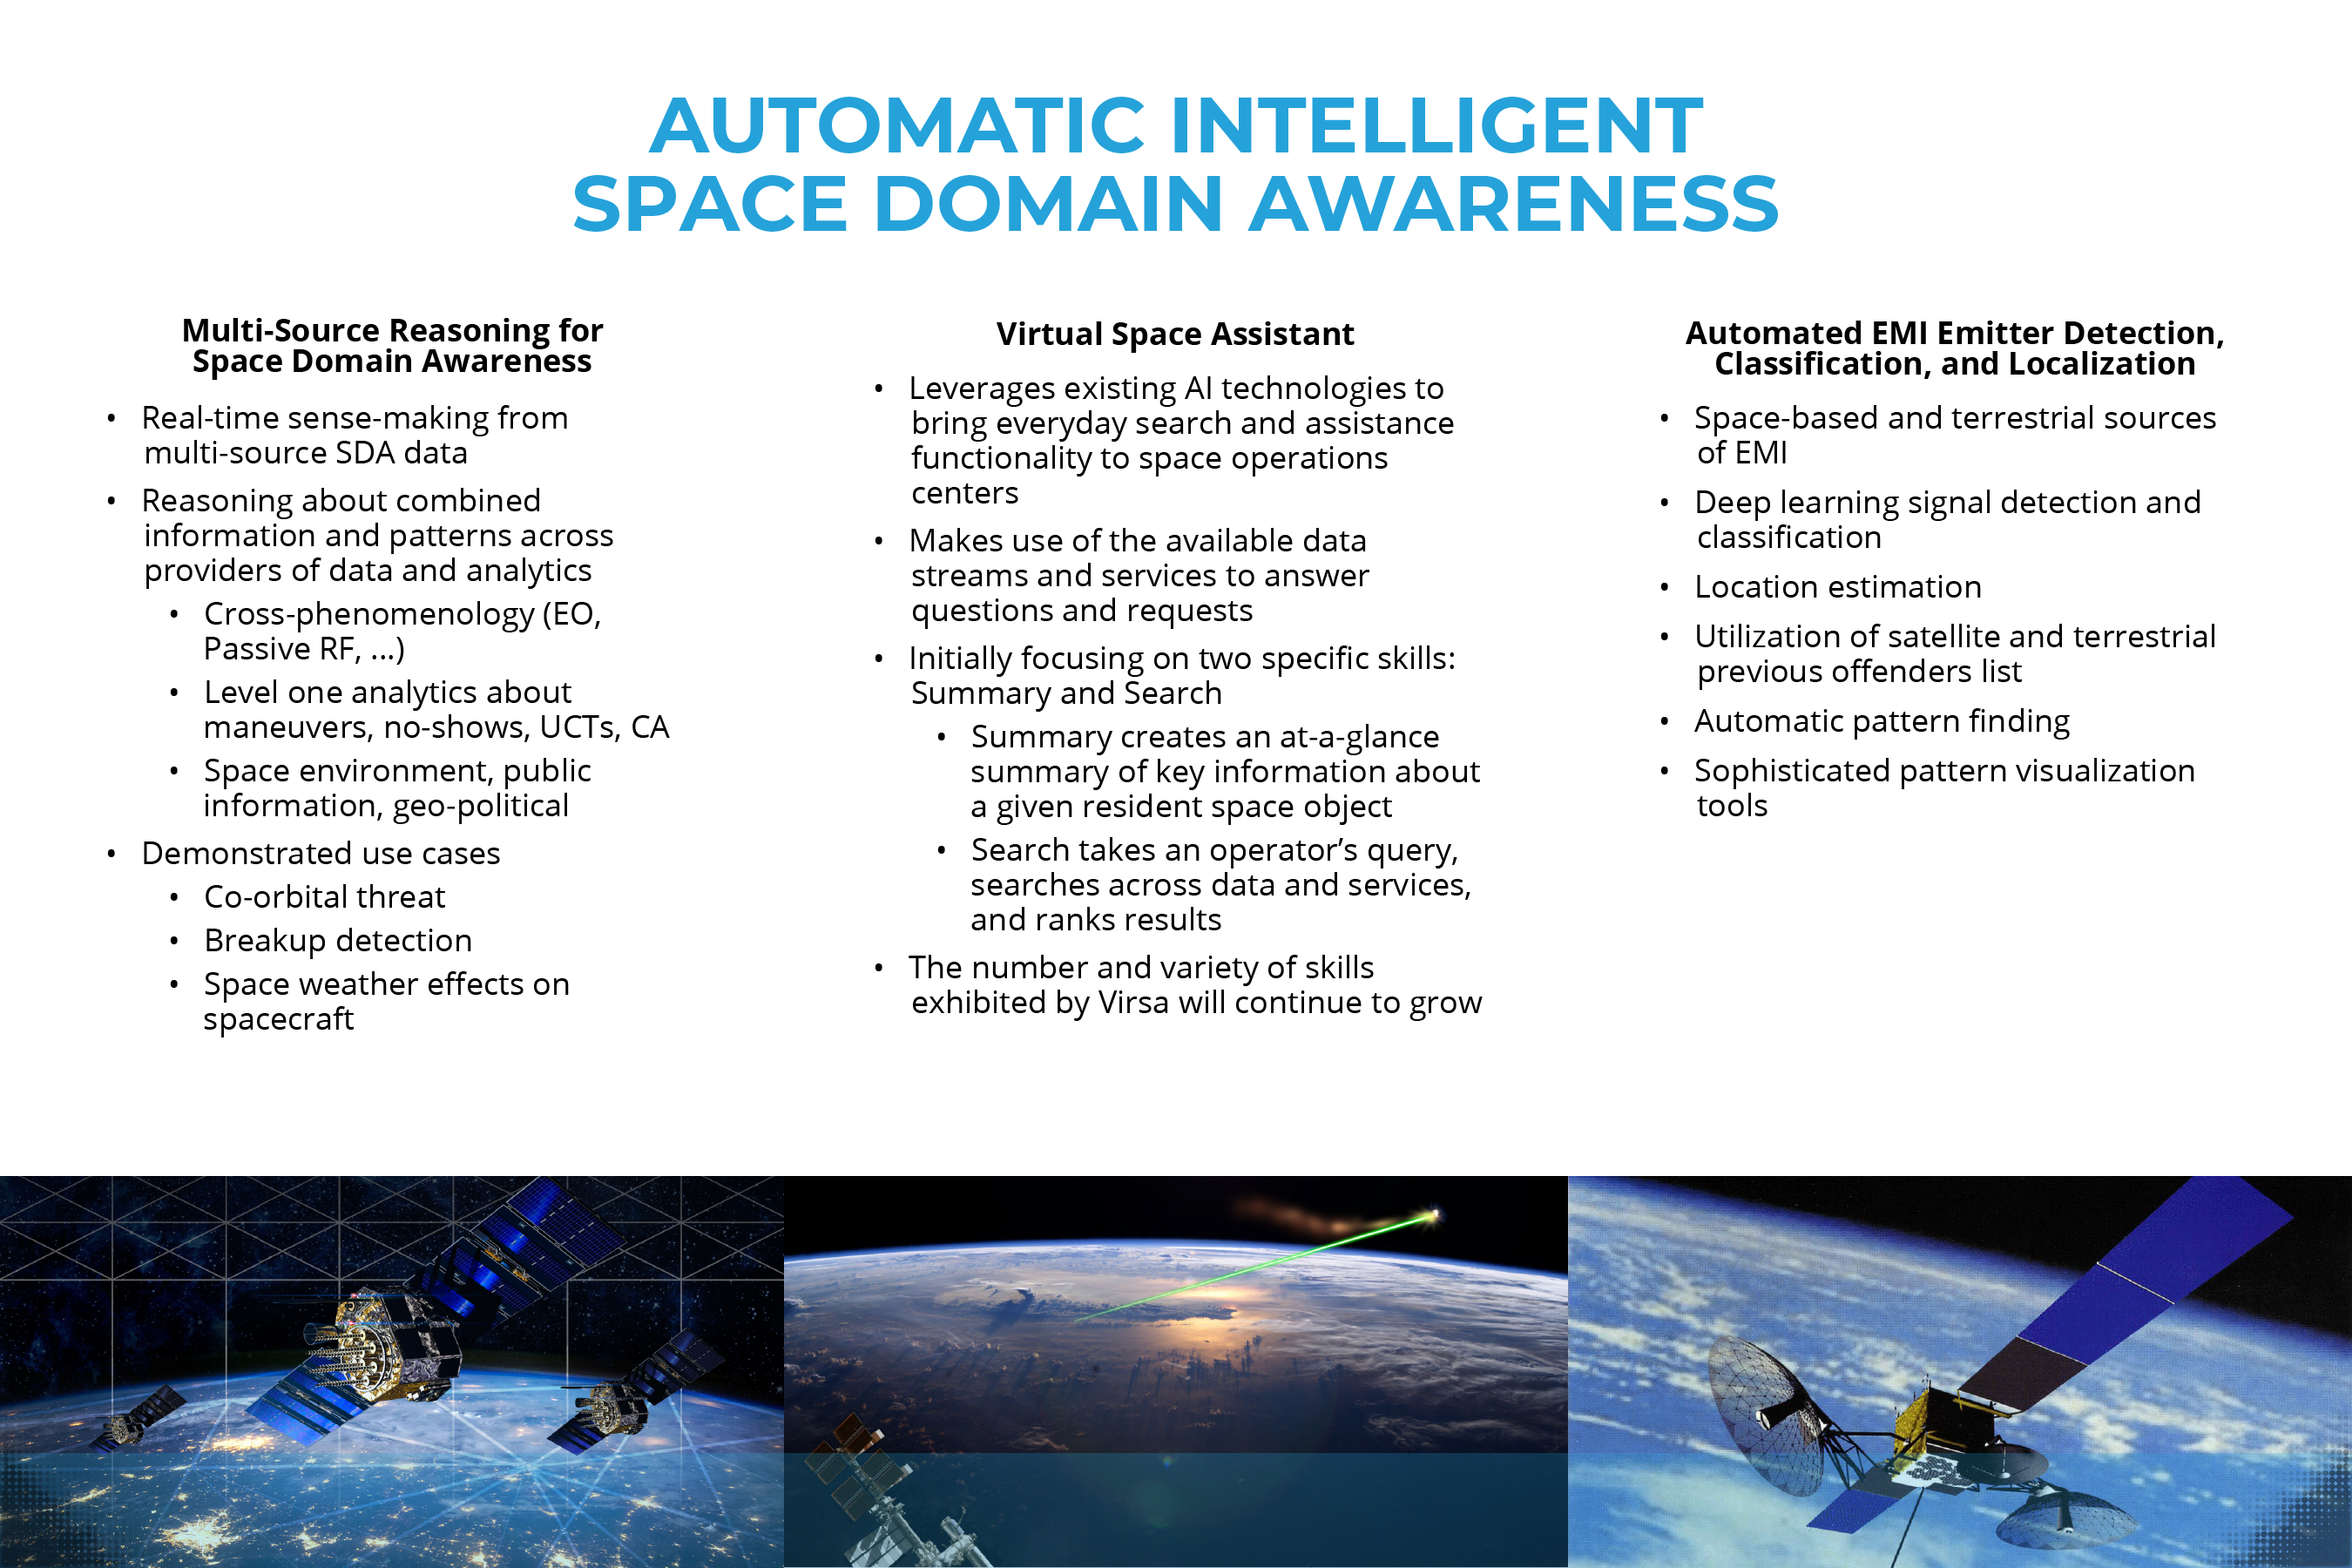 Automatic-Intelligent-Space-Domain-Awareness-2021